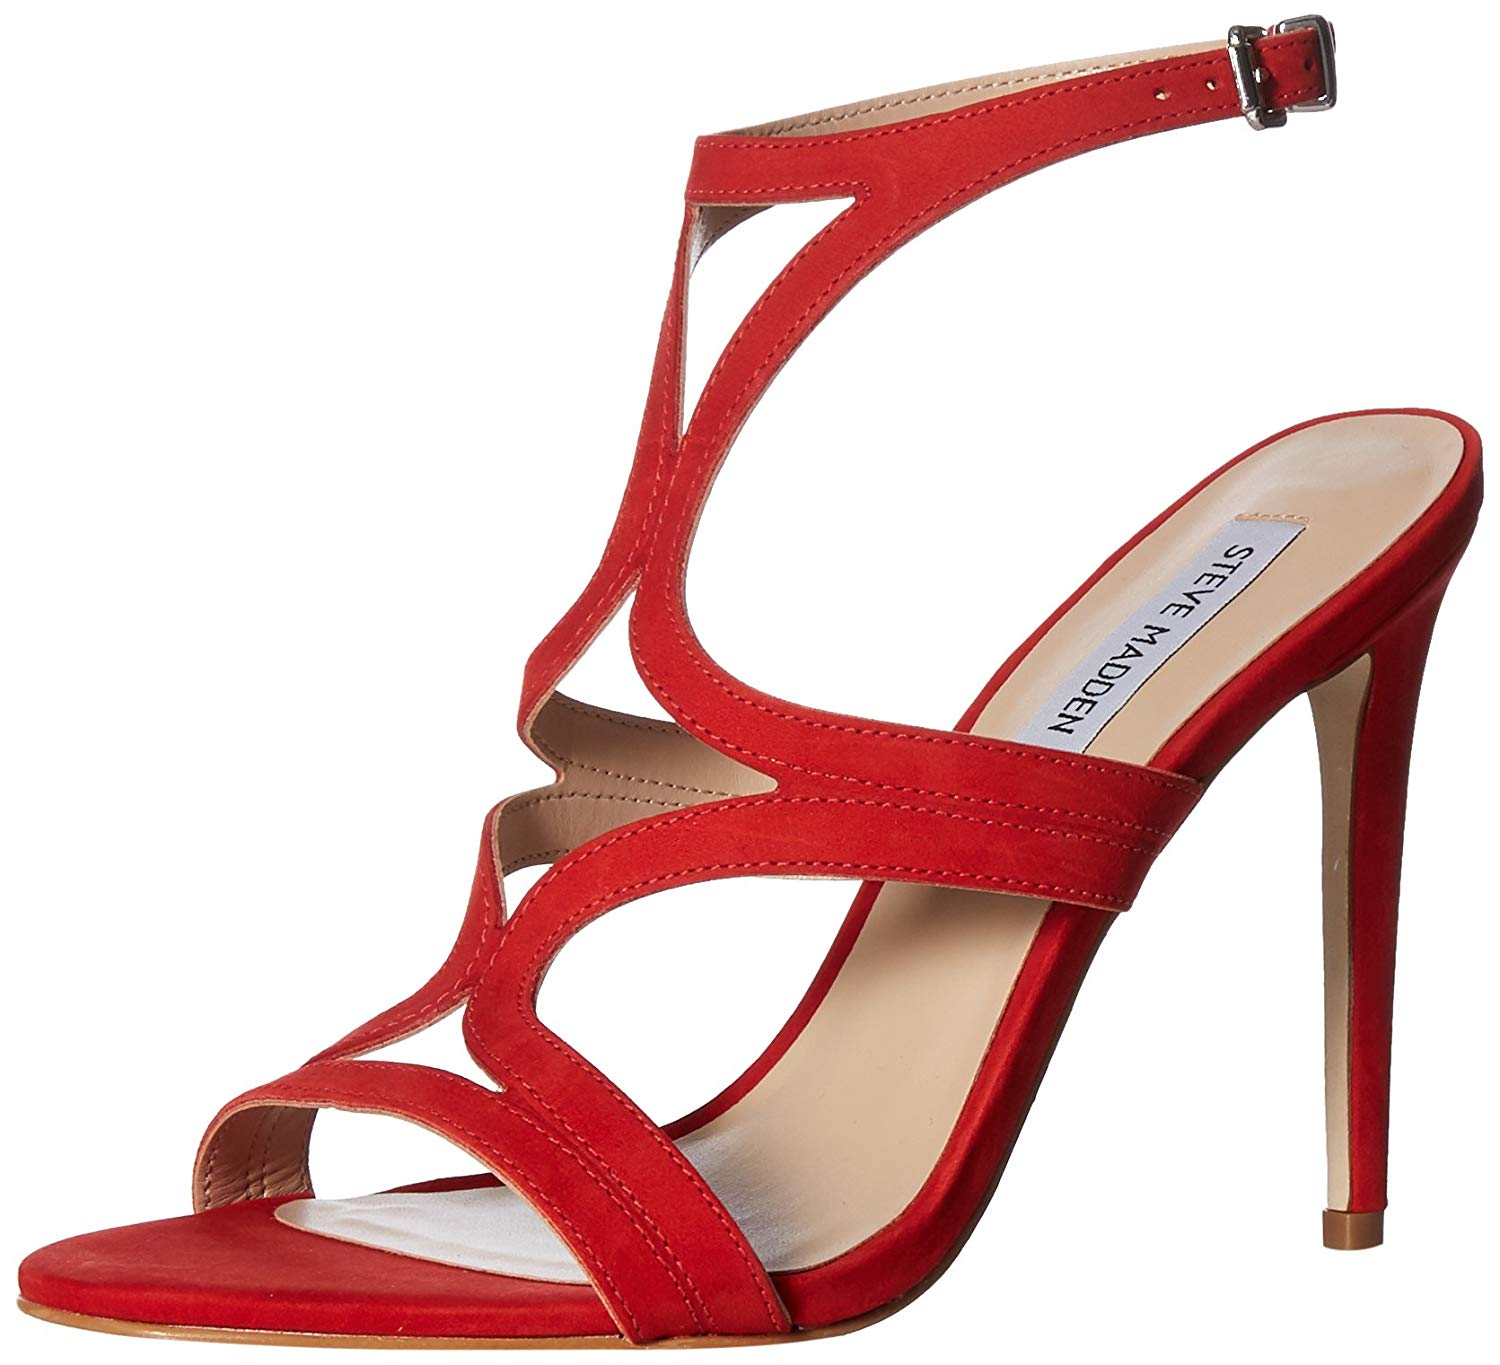 080e1c96320 Details about Steve Madden Womens Sidney Leather Open Toe Casual Strappy,  Red Nubuck, Size 8.0